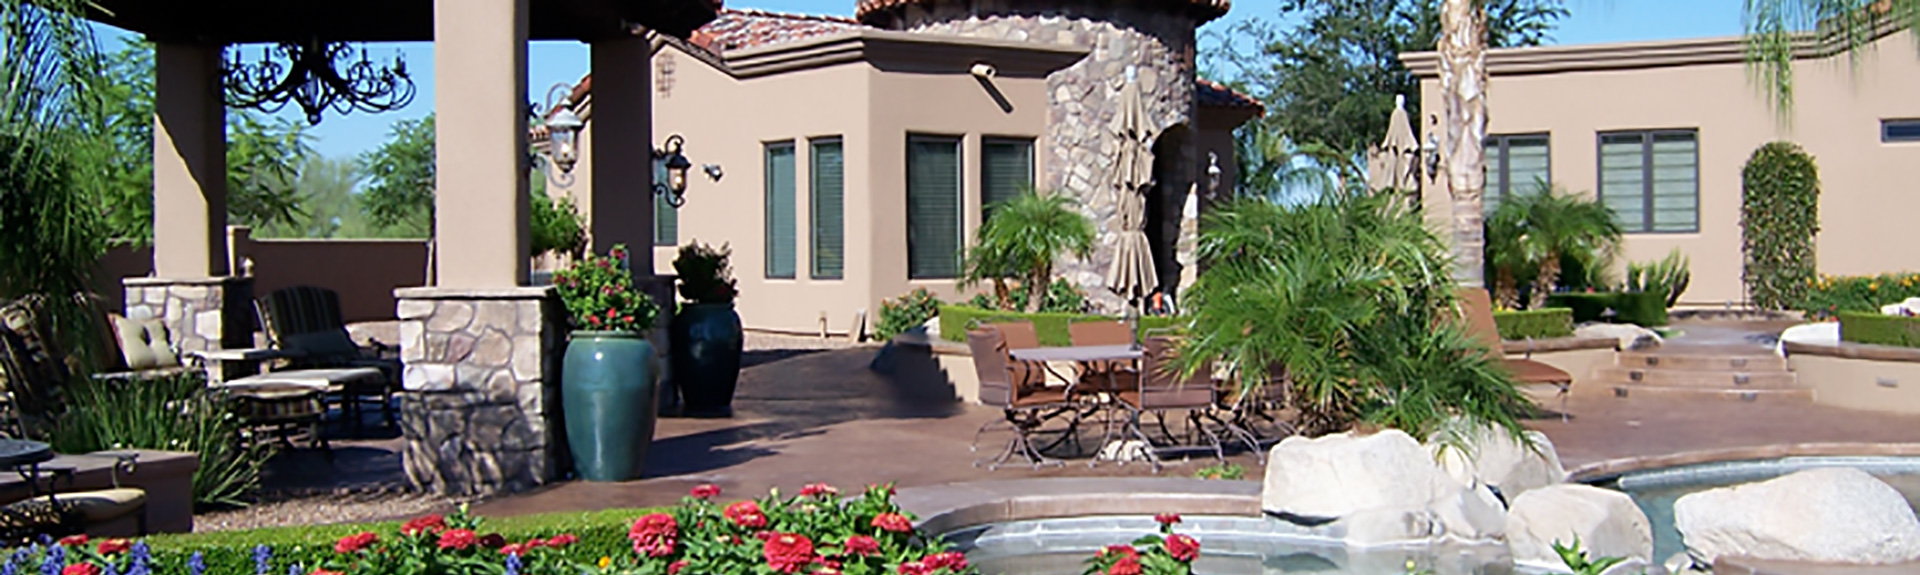 home courtyard landscaping image